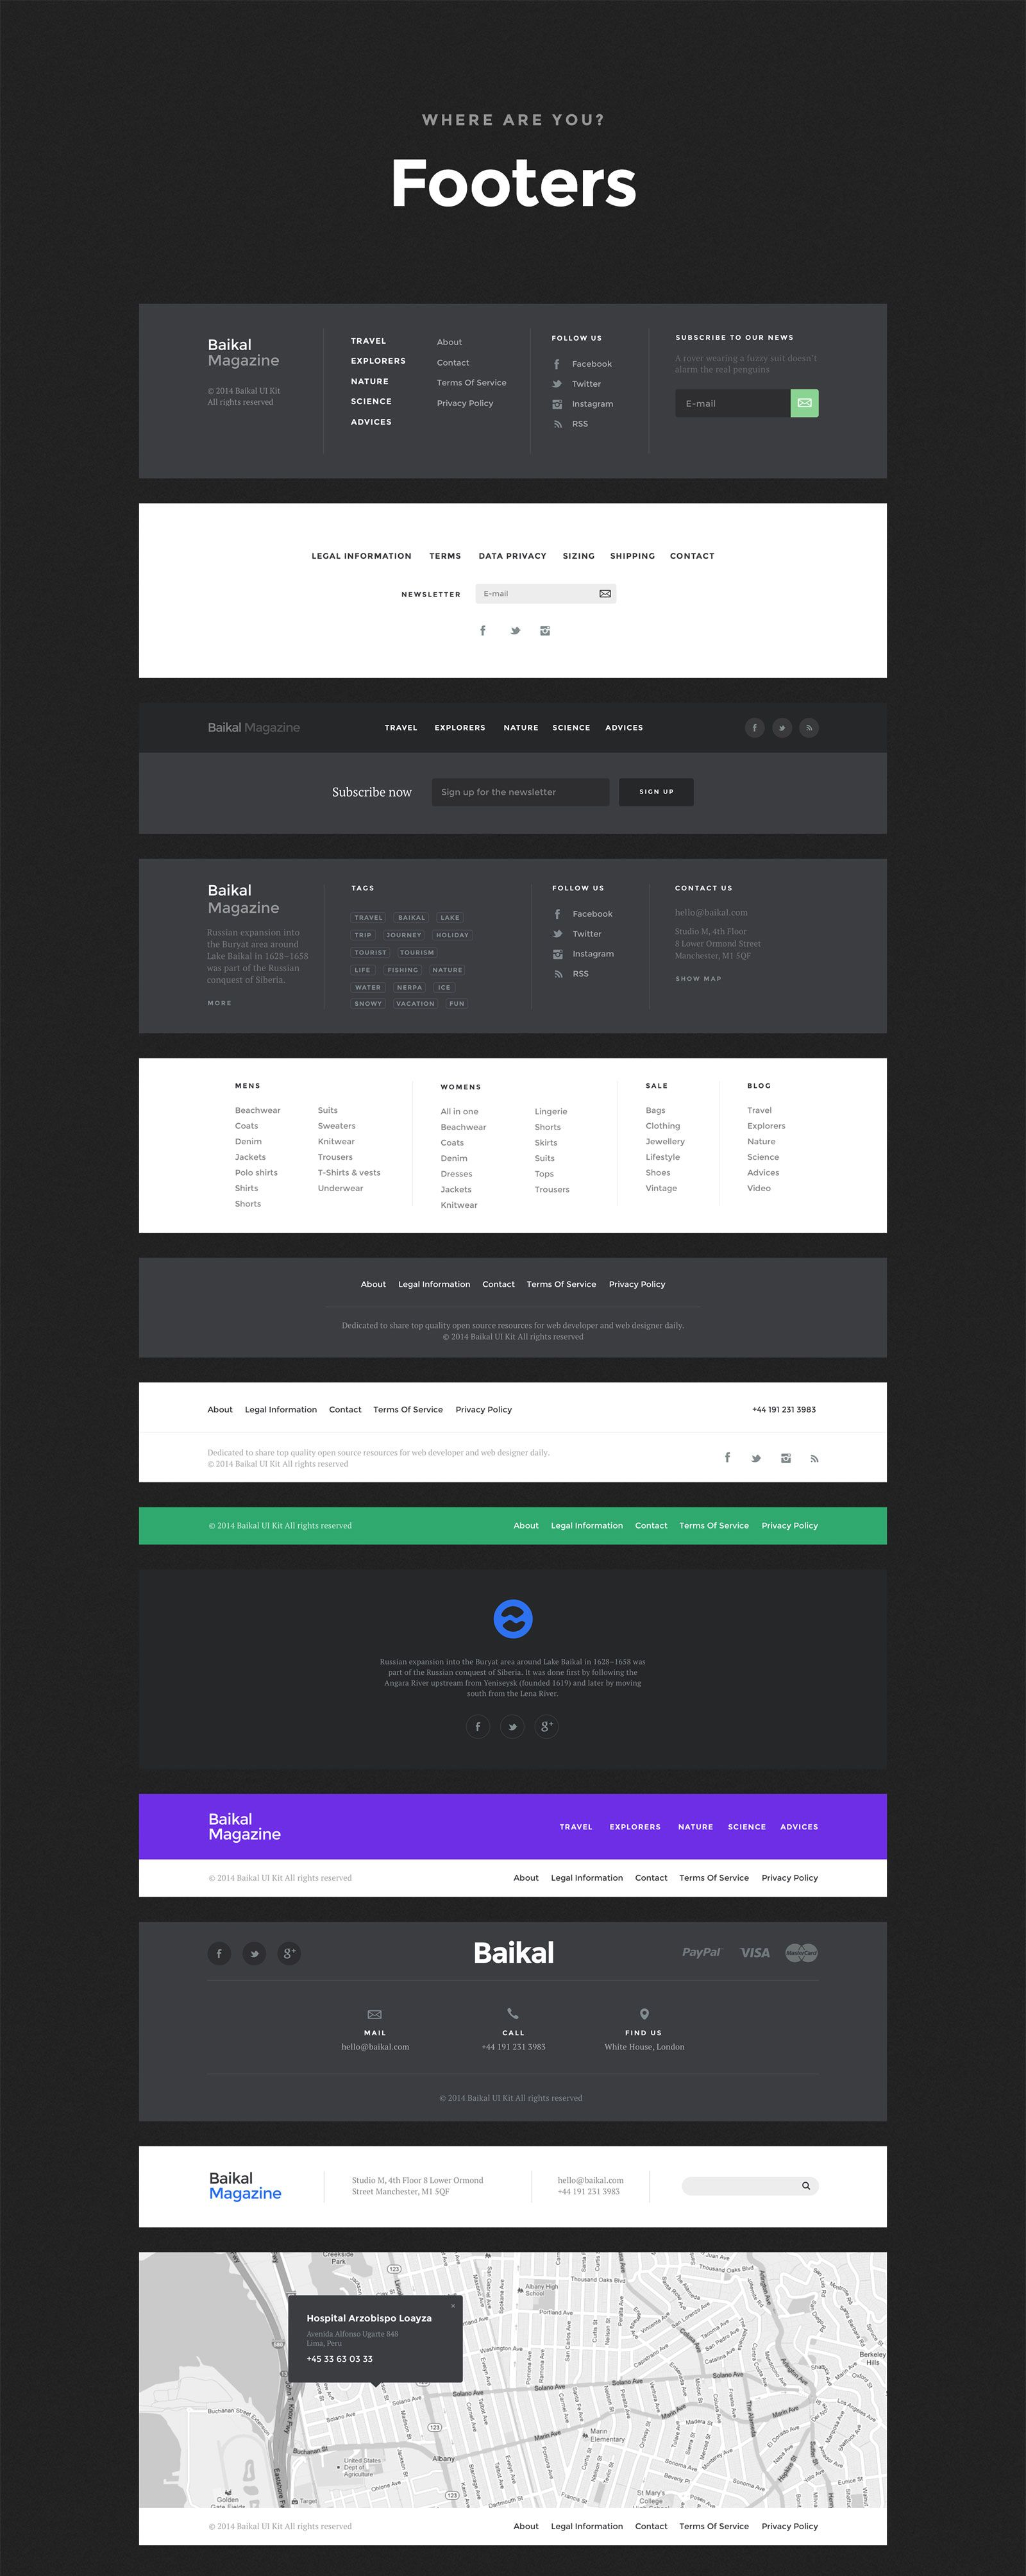 Baikal – Stylish Web Component Based UI Kit